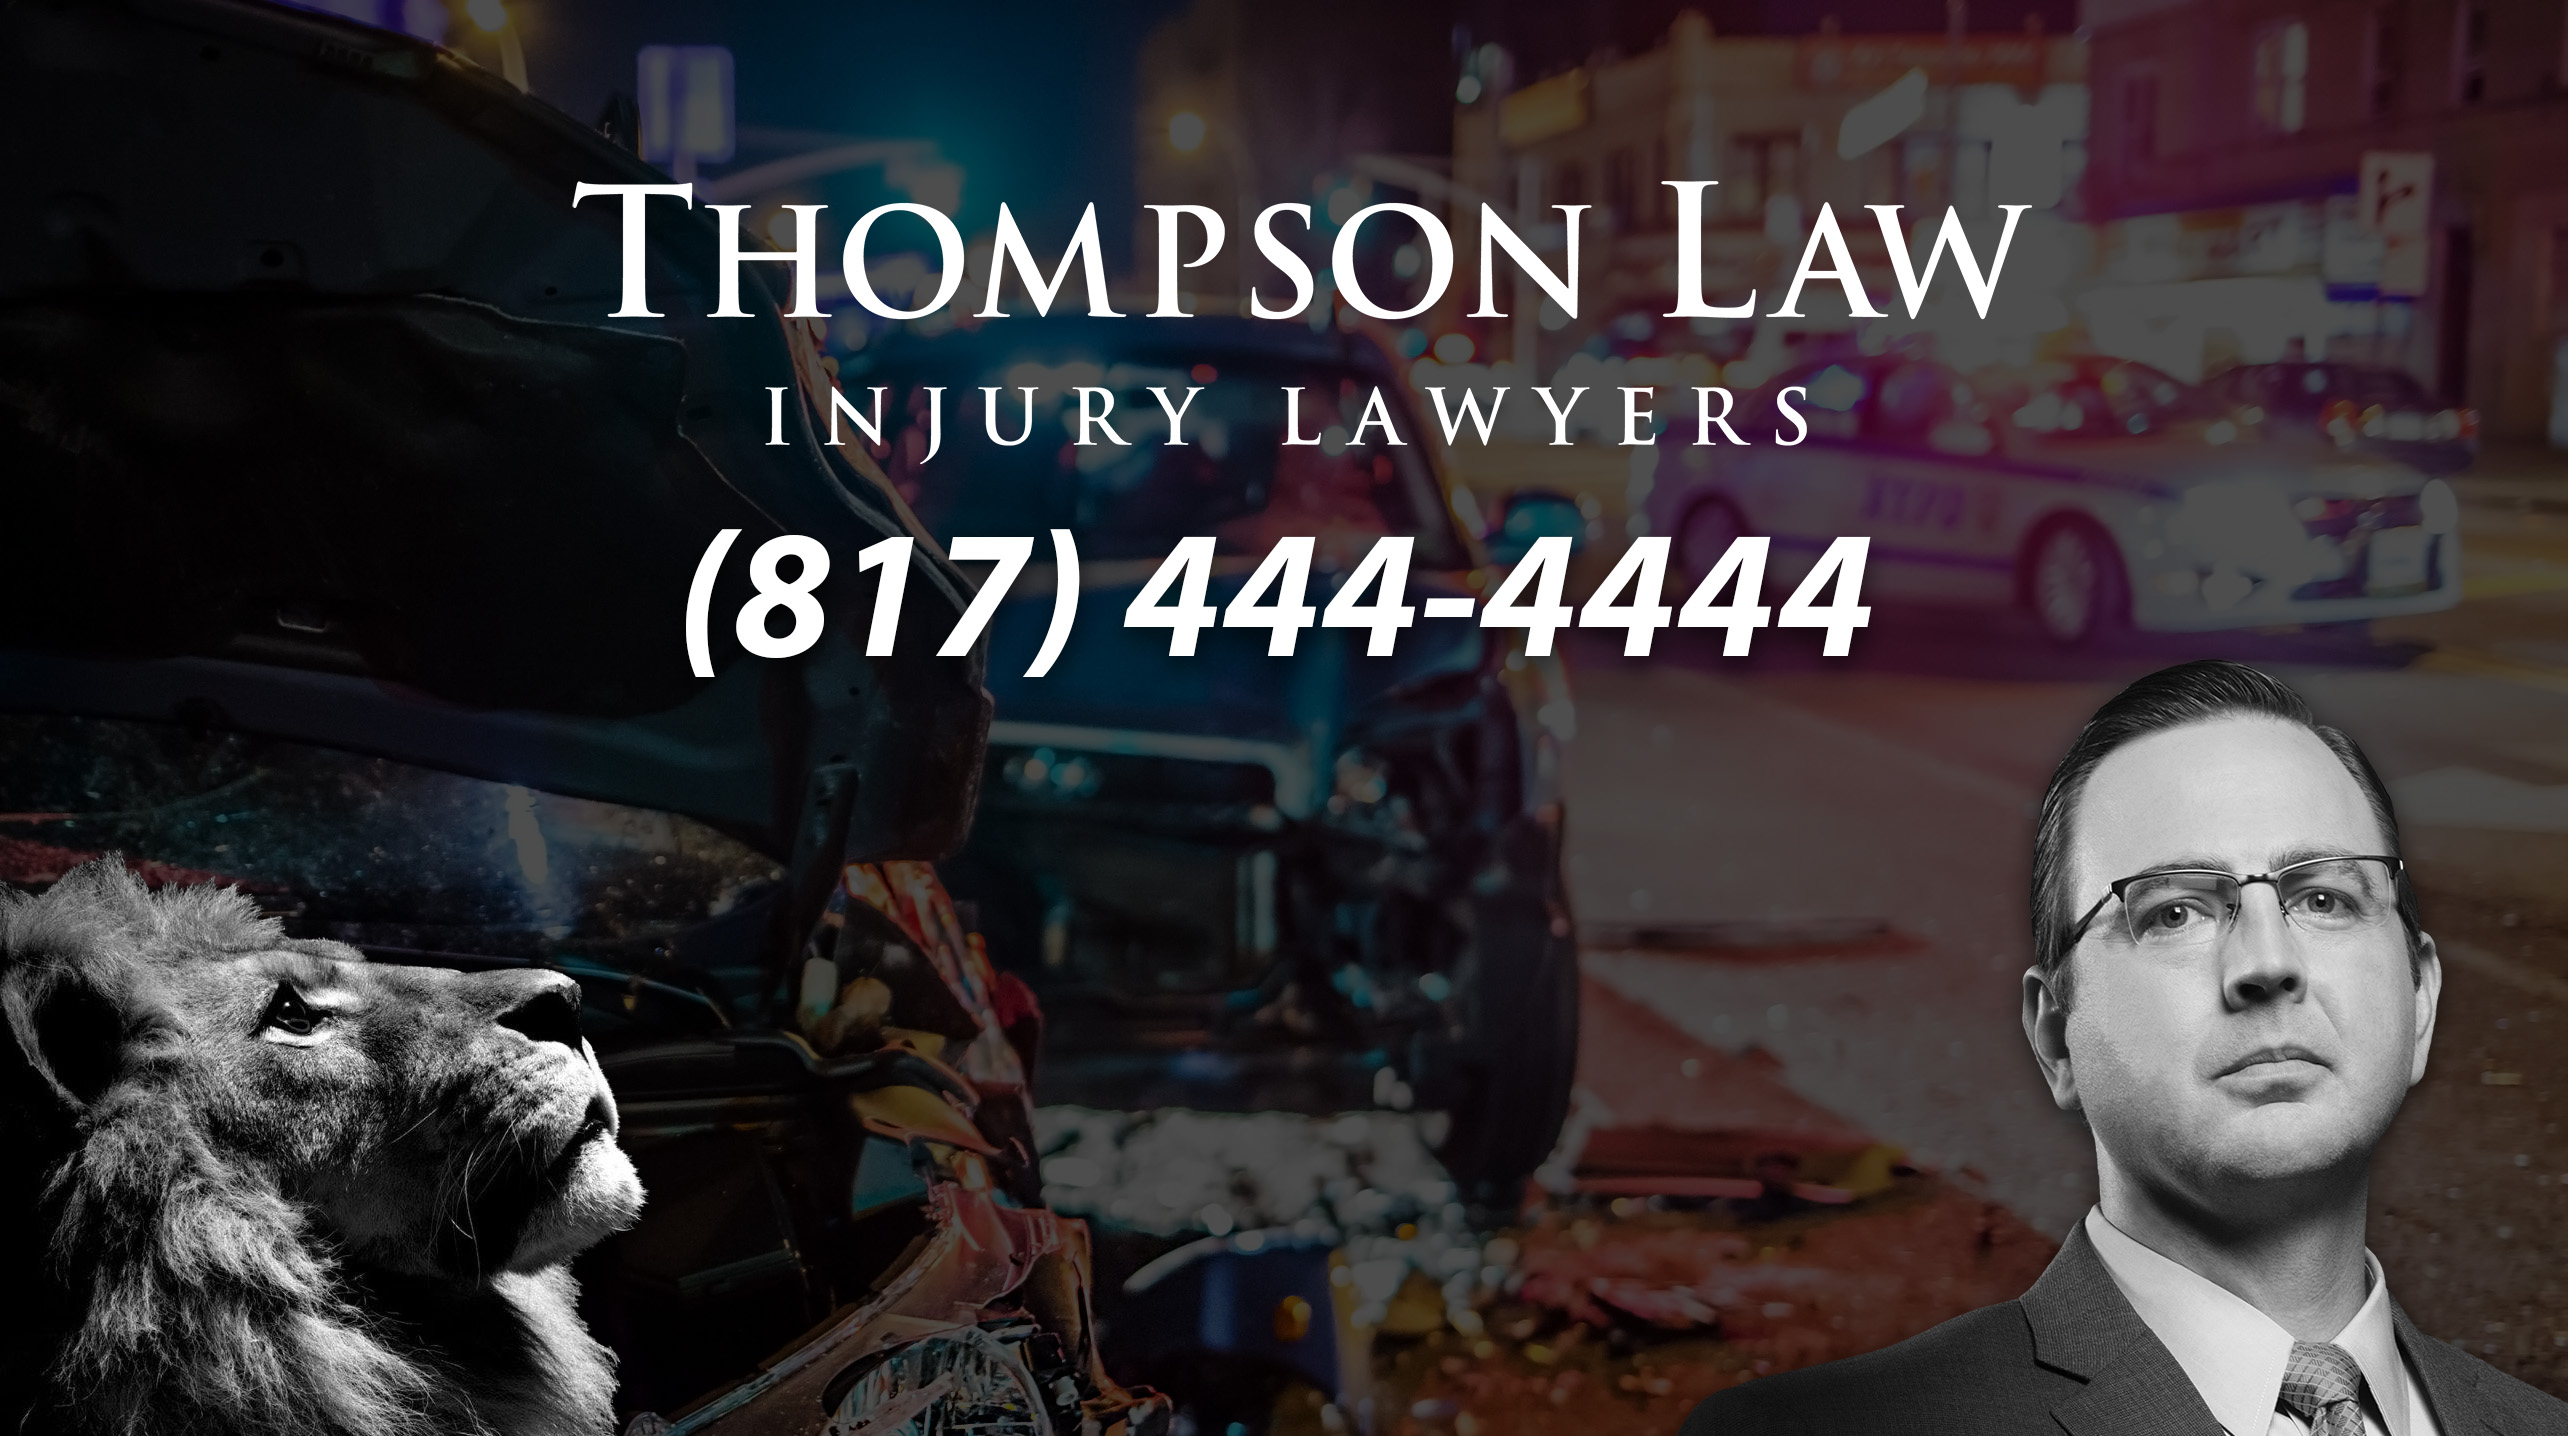 Thompson Law Injury Lawyers reviews | Personal Injury Law at 5500 E Loop 820 S - Fort Worth TX